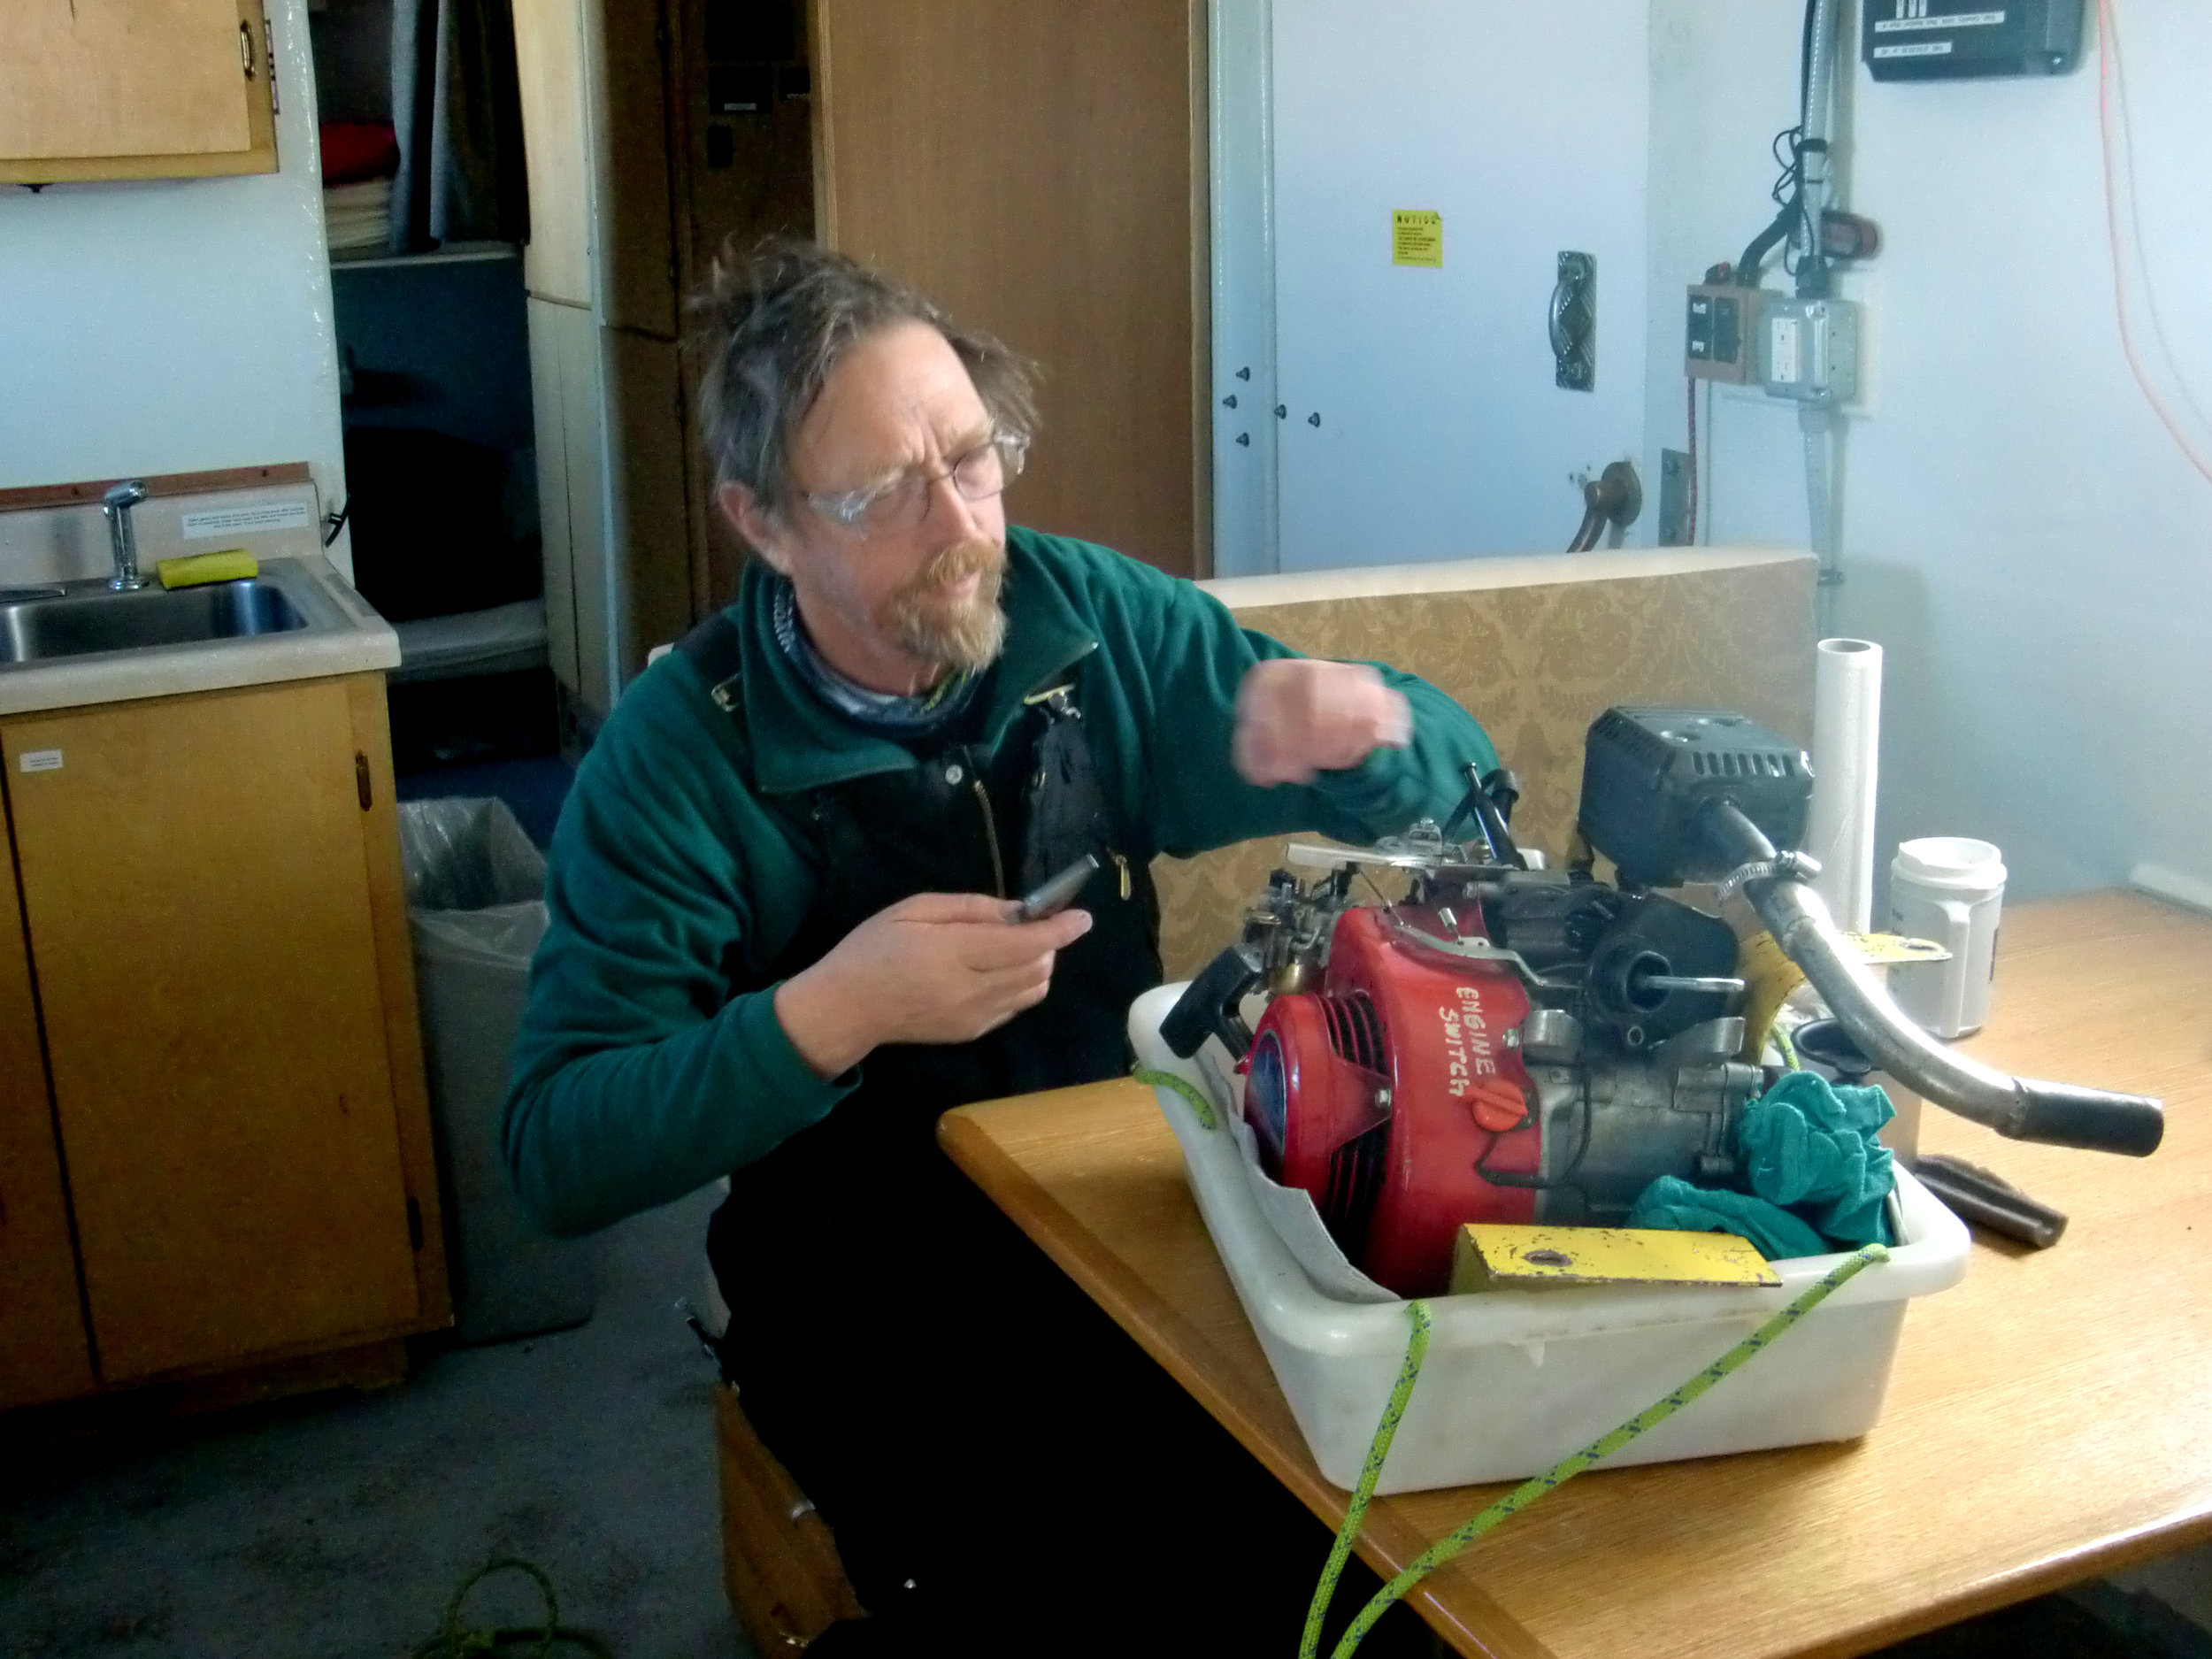 Is Robin Davies making repairs or dinner? Either way, Summit Station can't come too fast! Photo: Shep Vail (2012 GrIT)